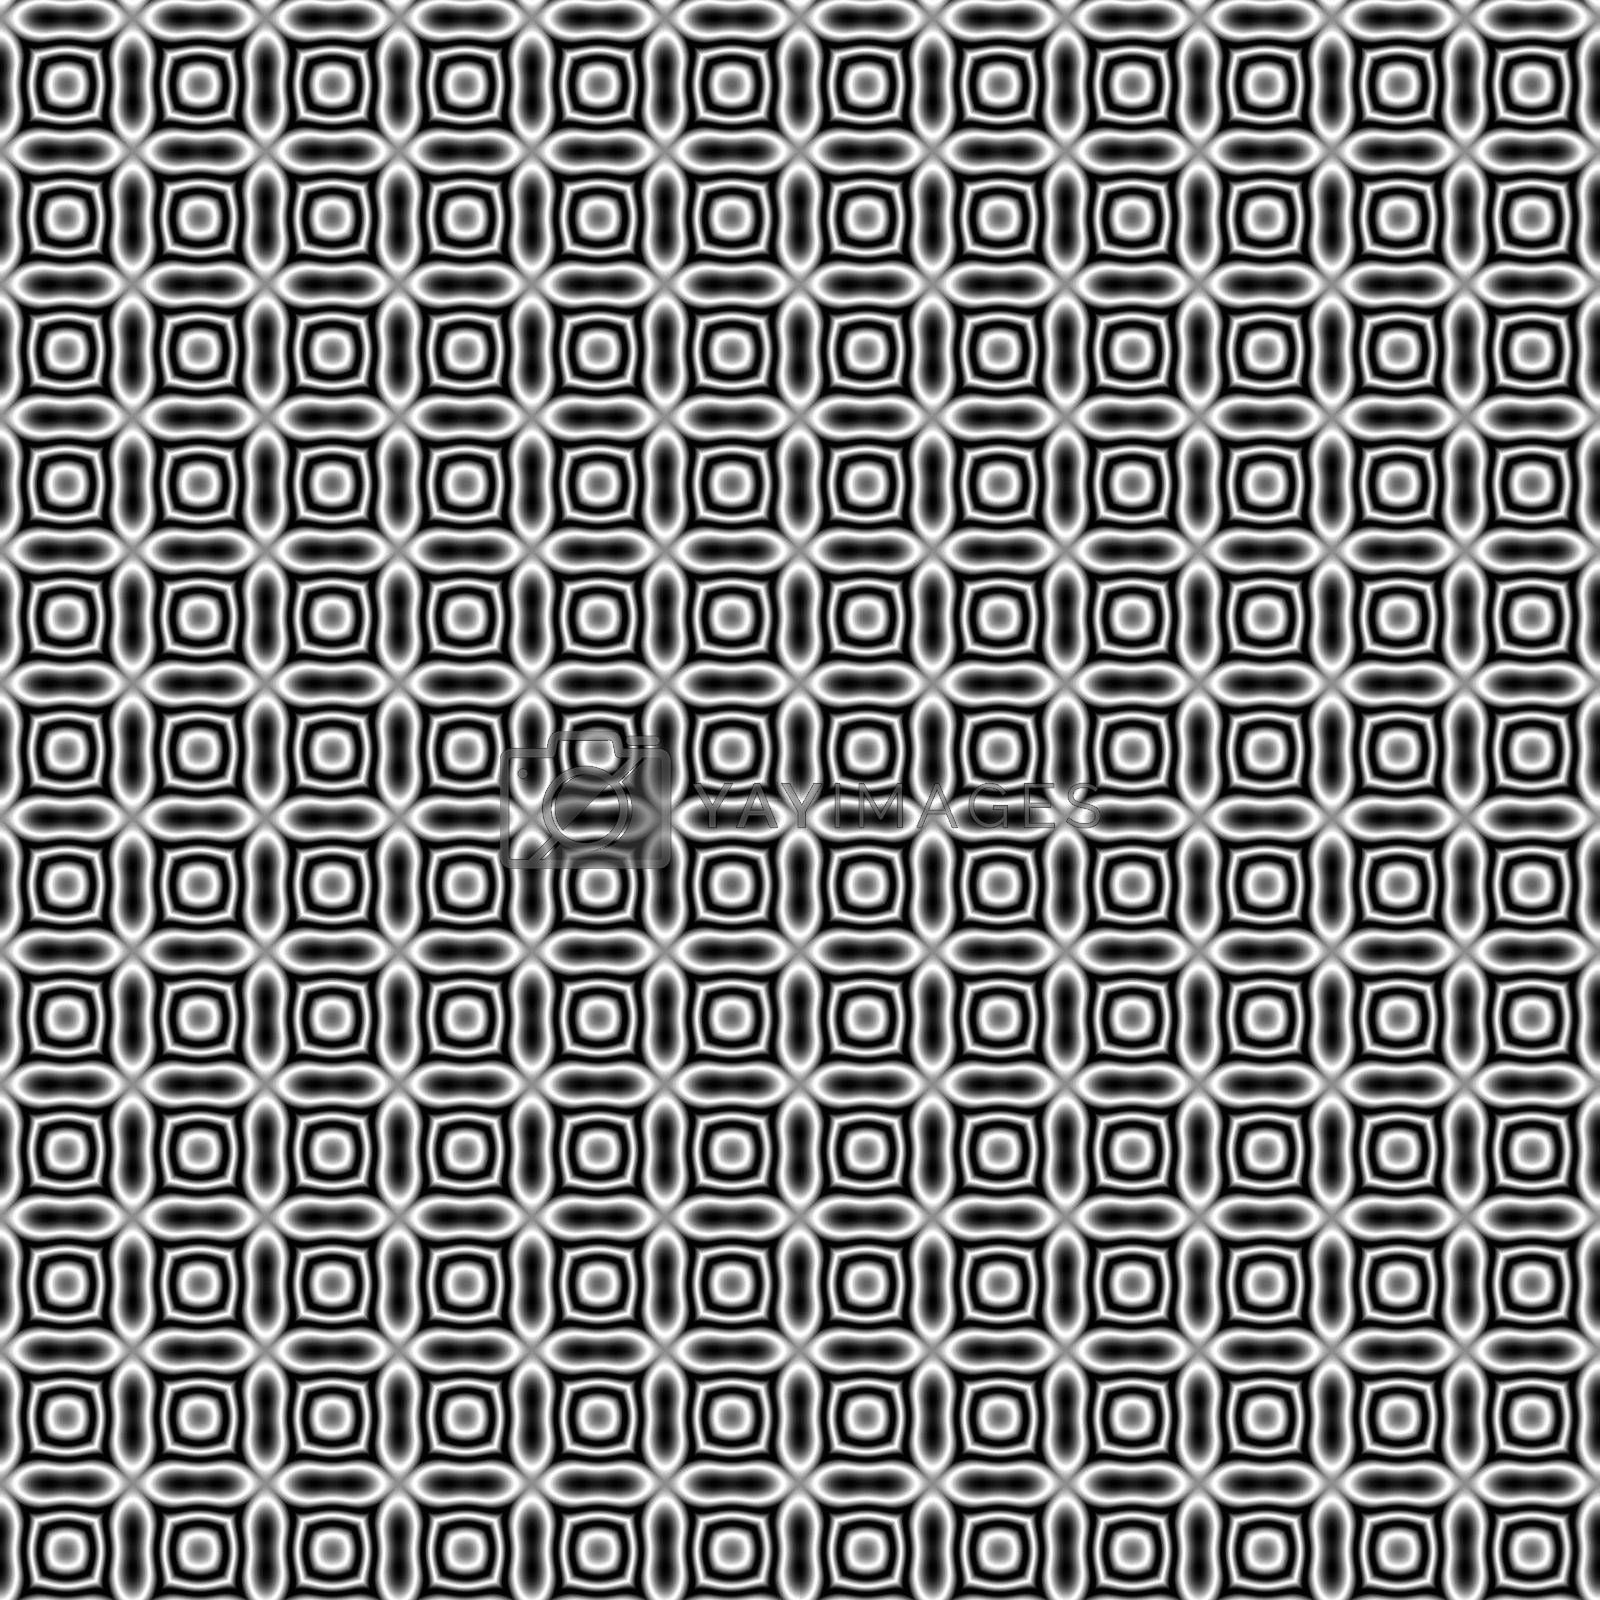 small fractal ornaments, forming a tiling black-and-white background